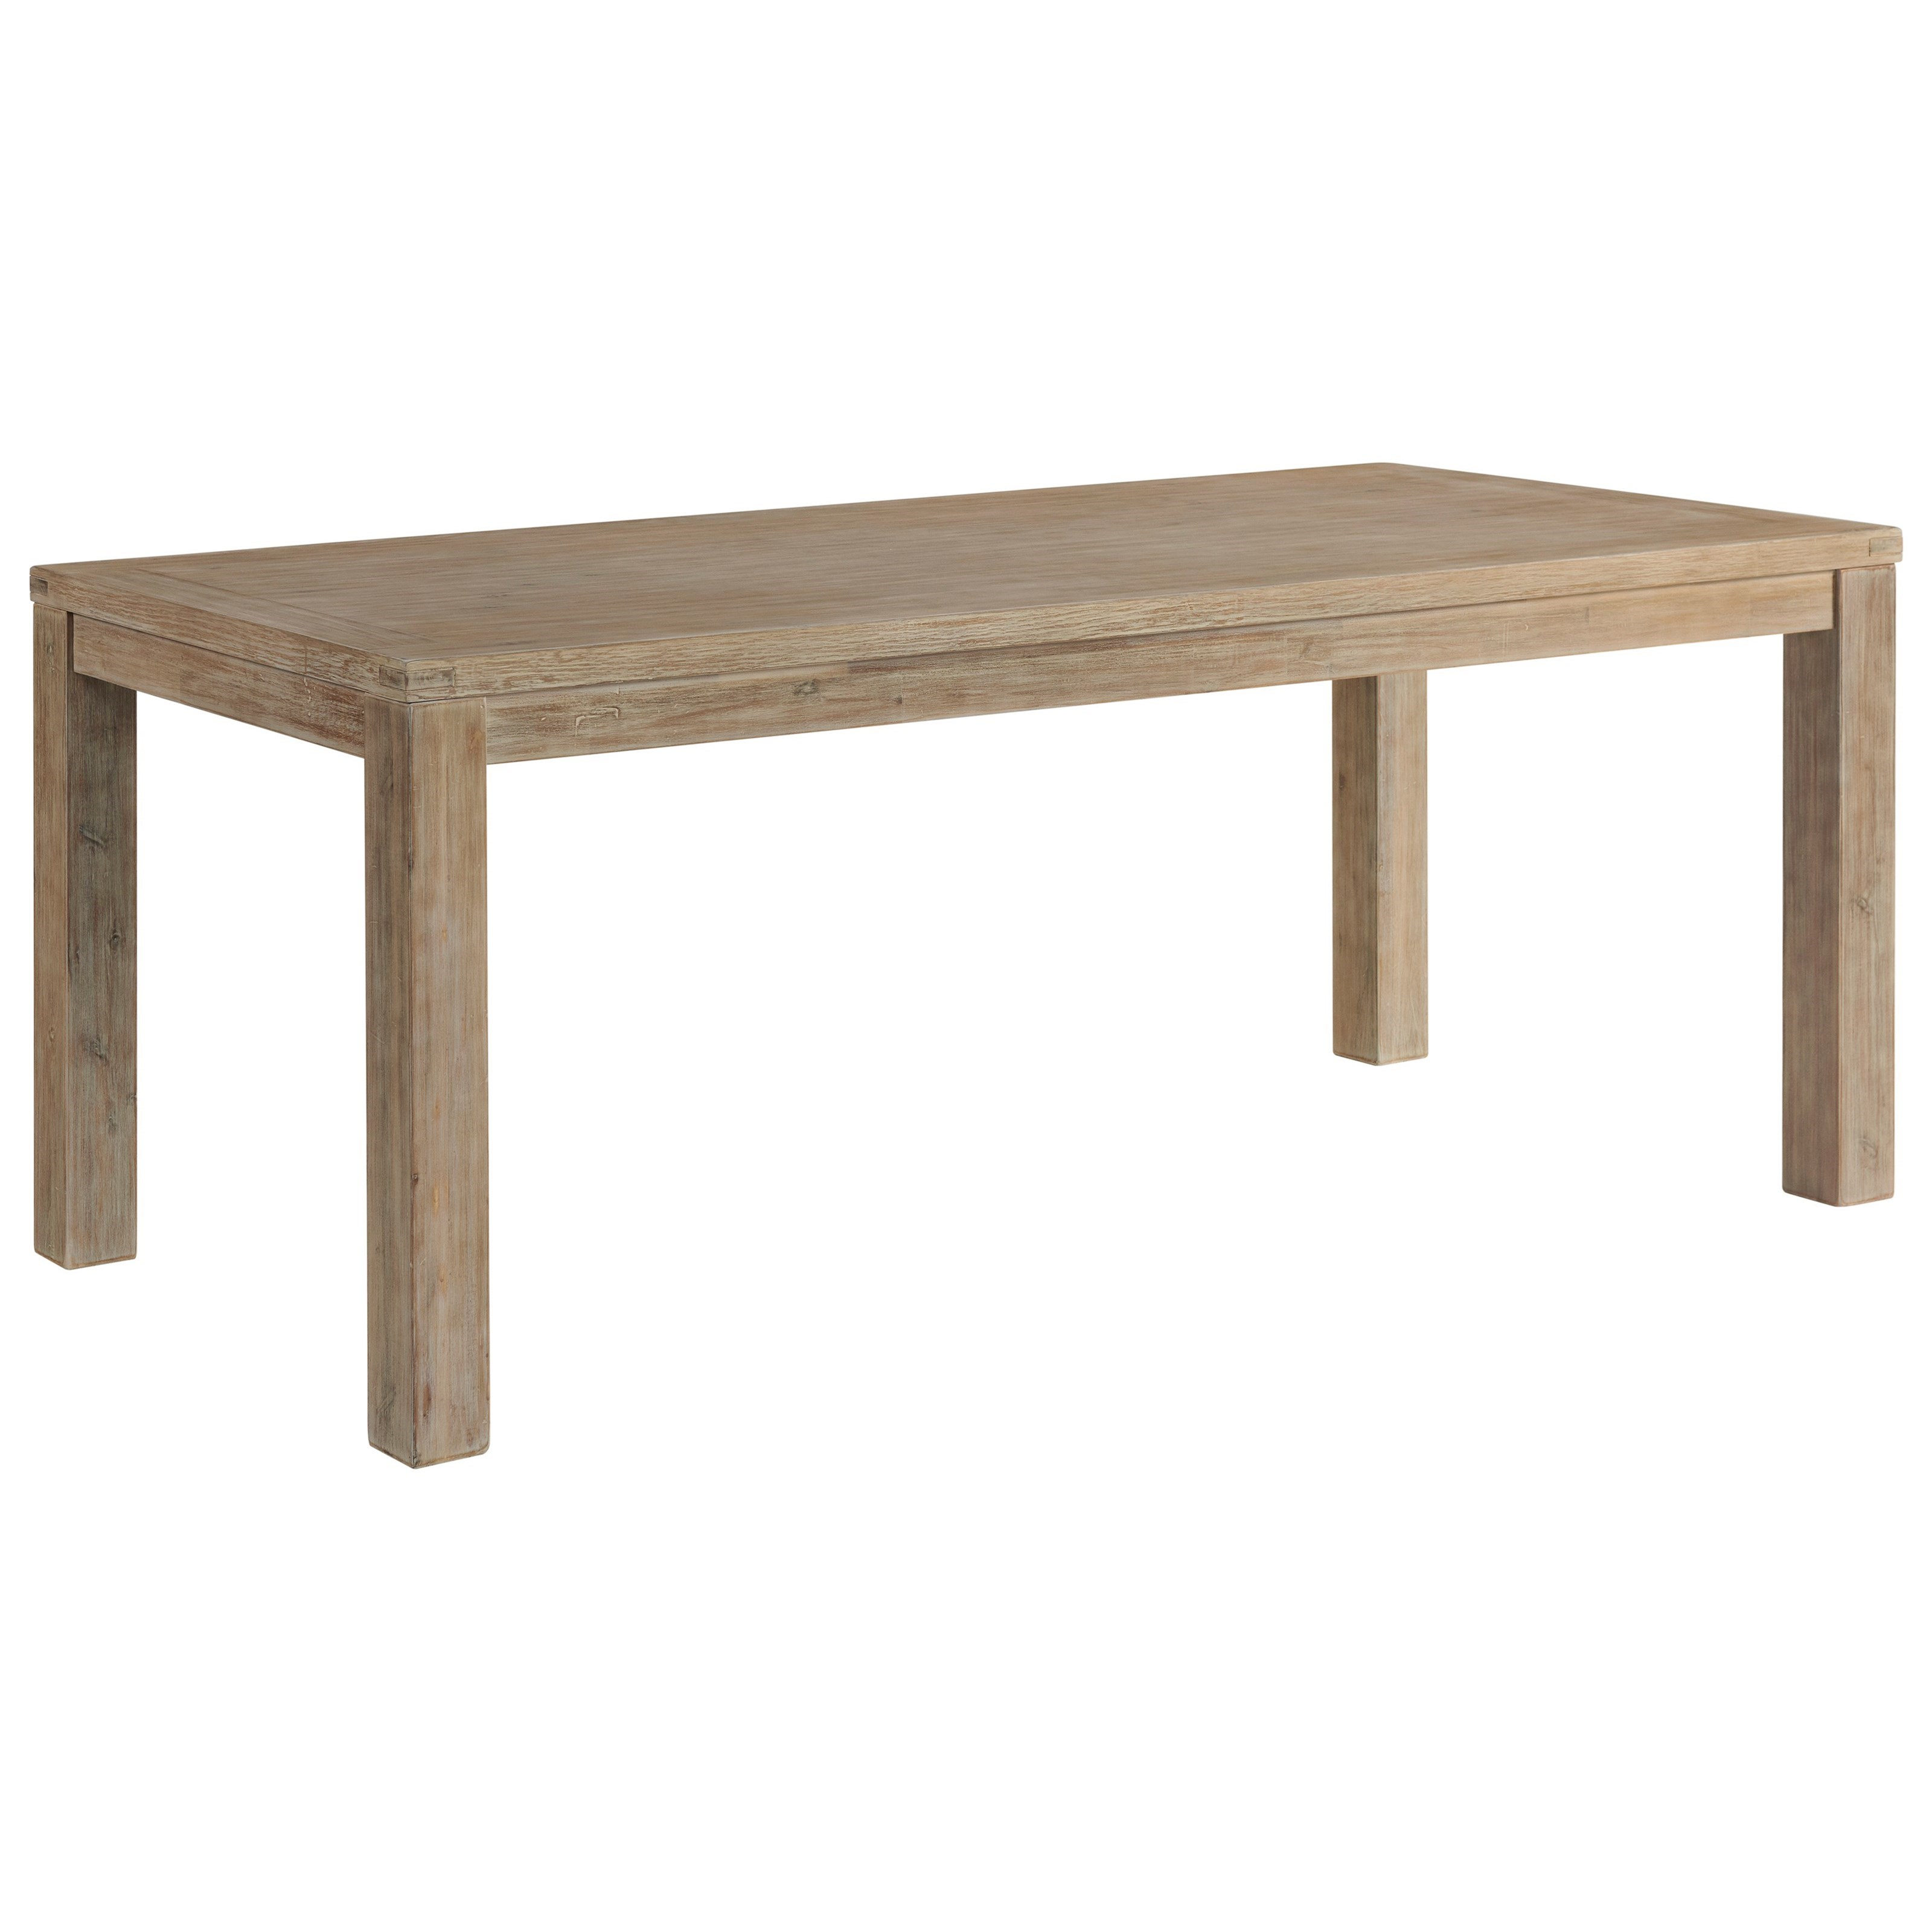 Ambrosh Dining Table by Ashley Furniture at HomeWorld Furniture